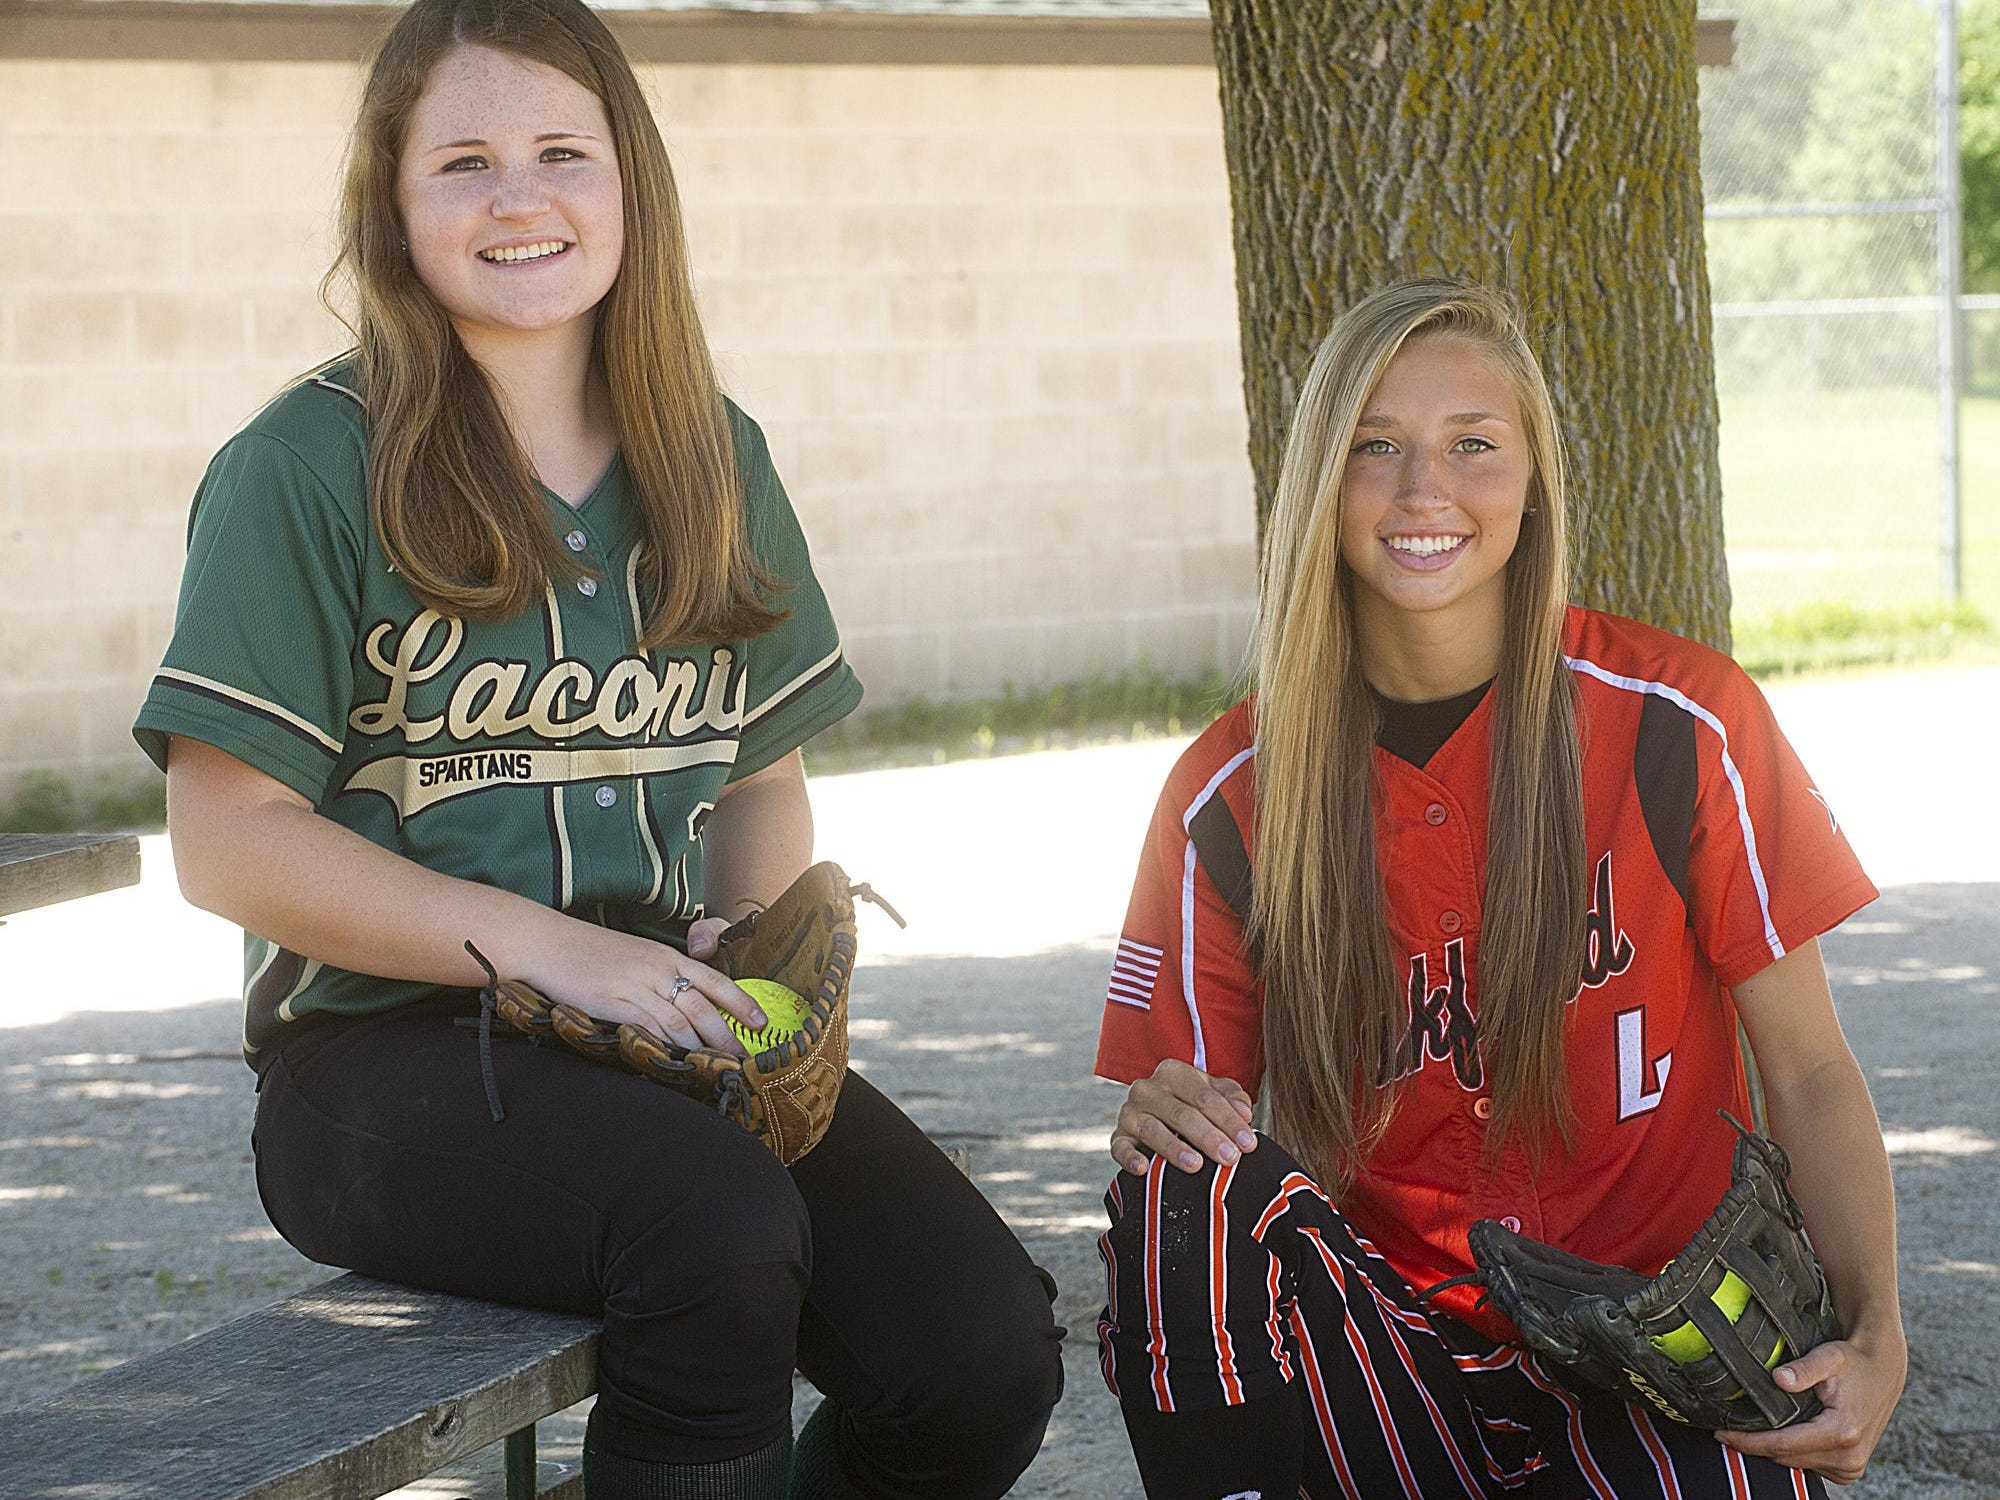 Laconia's Kayla Schwebke (left) and Oakfield's McKaela Ryan are the 2015 All-Area Softball Co-Players of the Year.